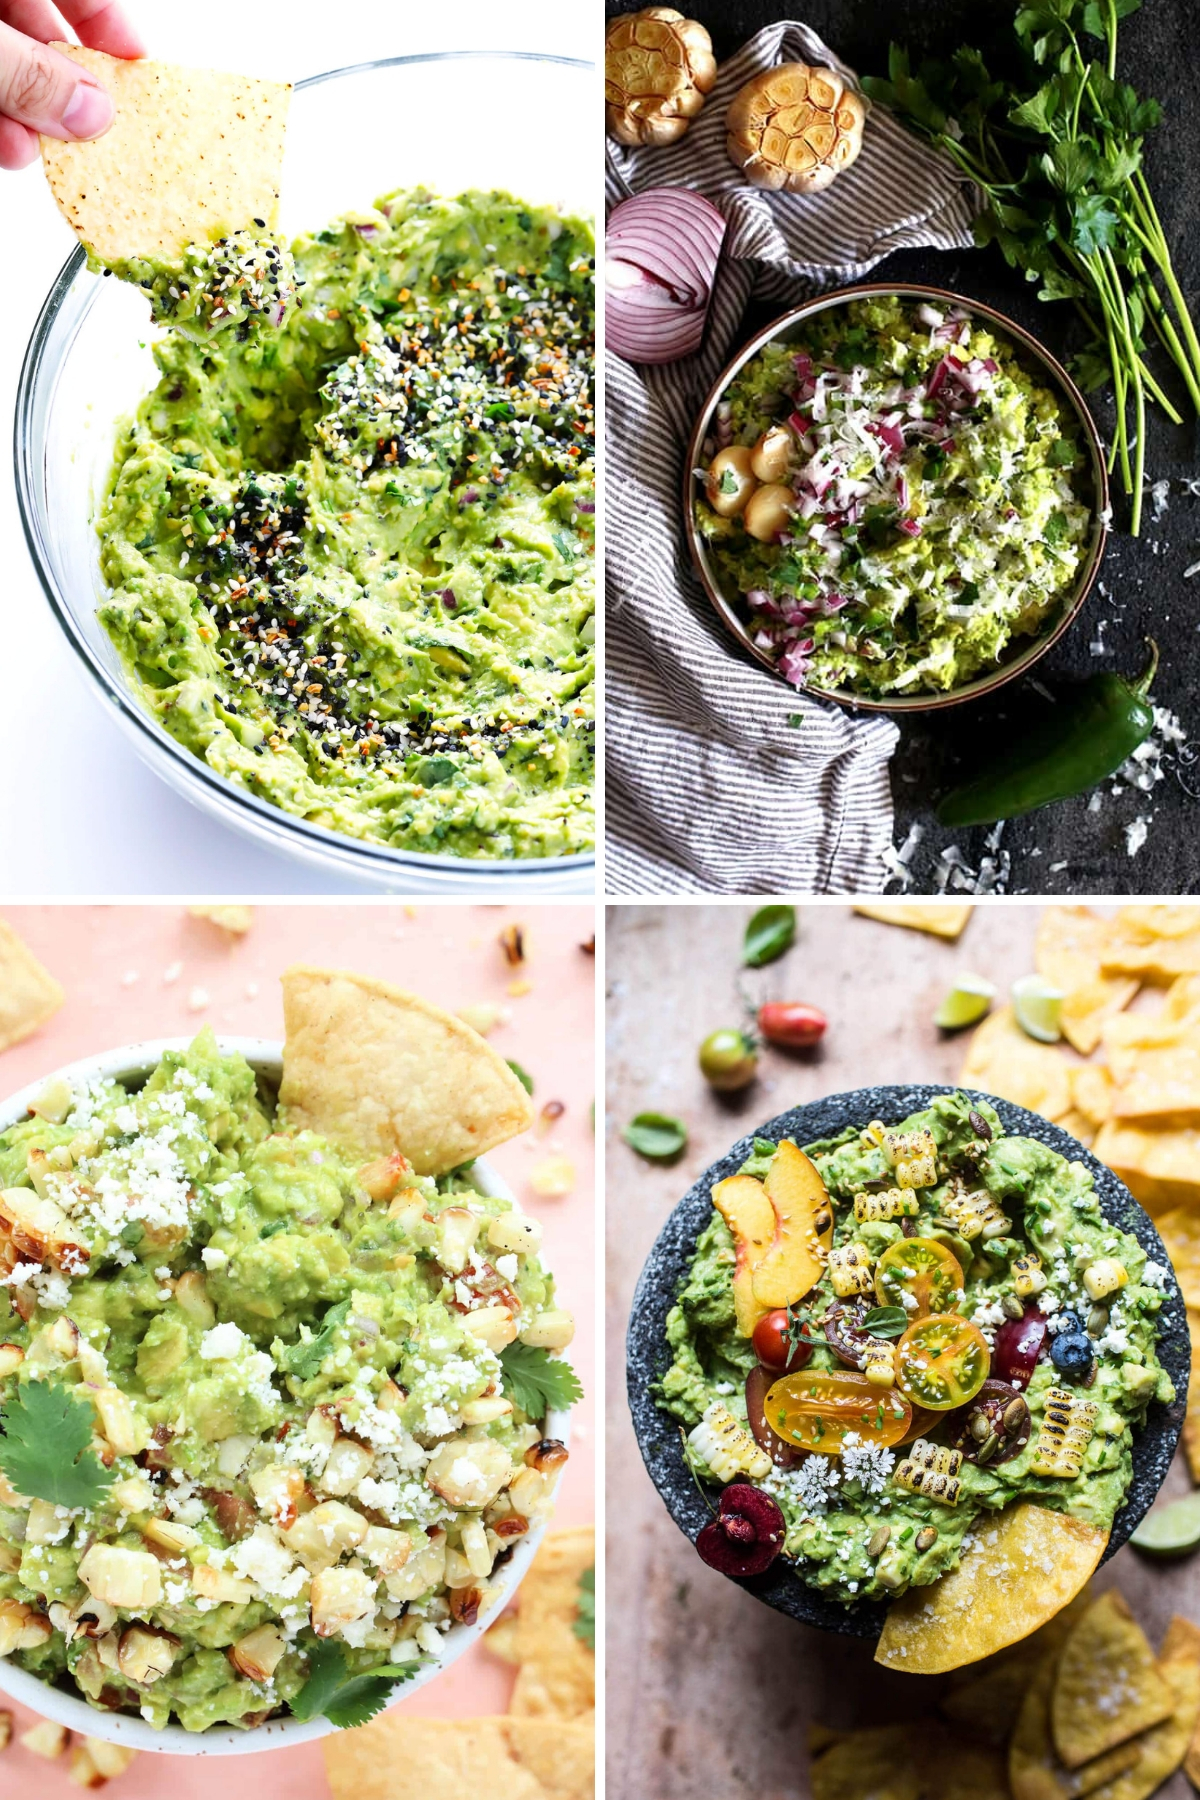 The Ultimate Guide to Guacamole ~ Creative guacamole recipes